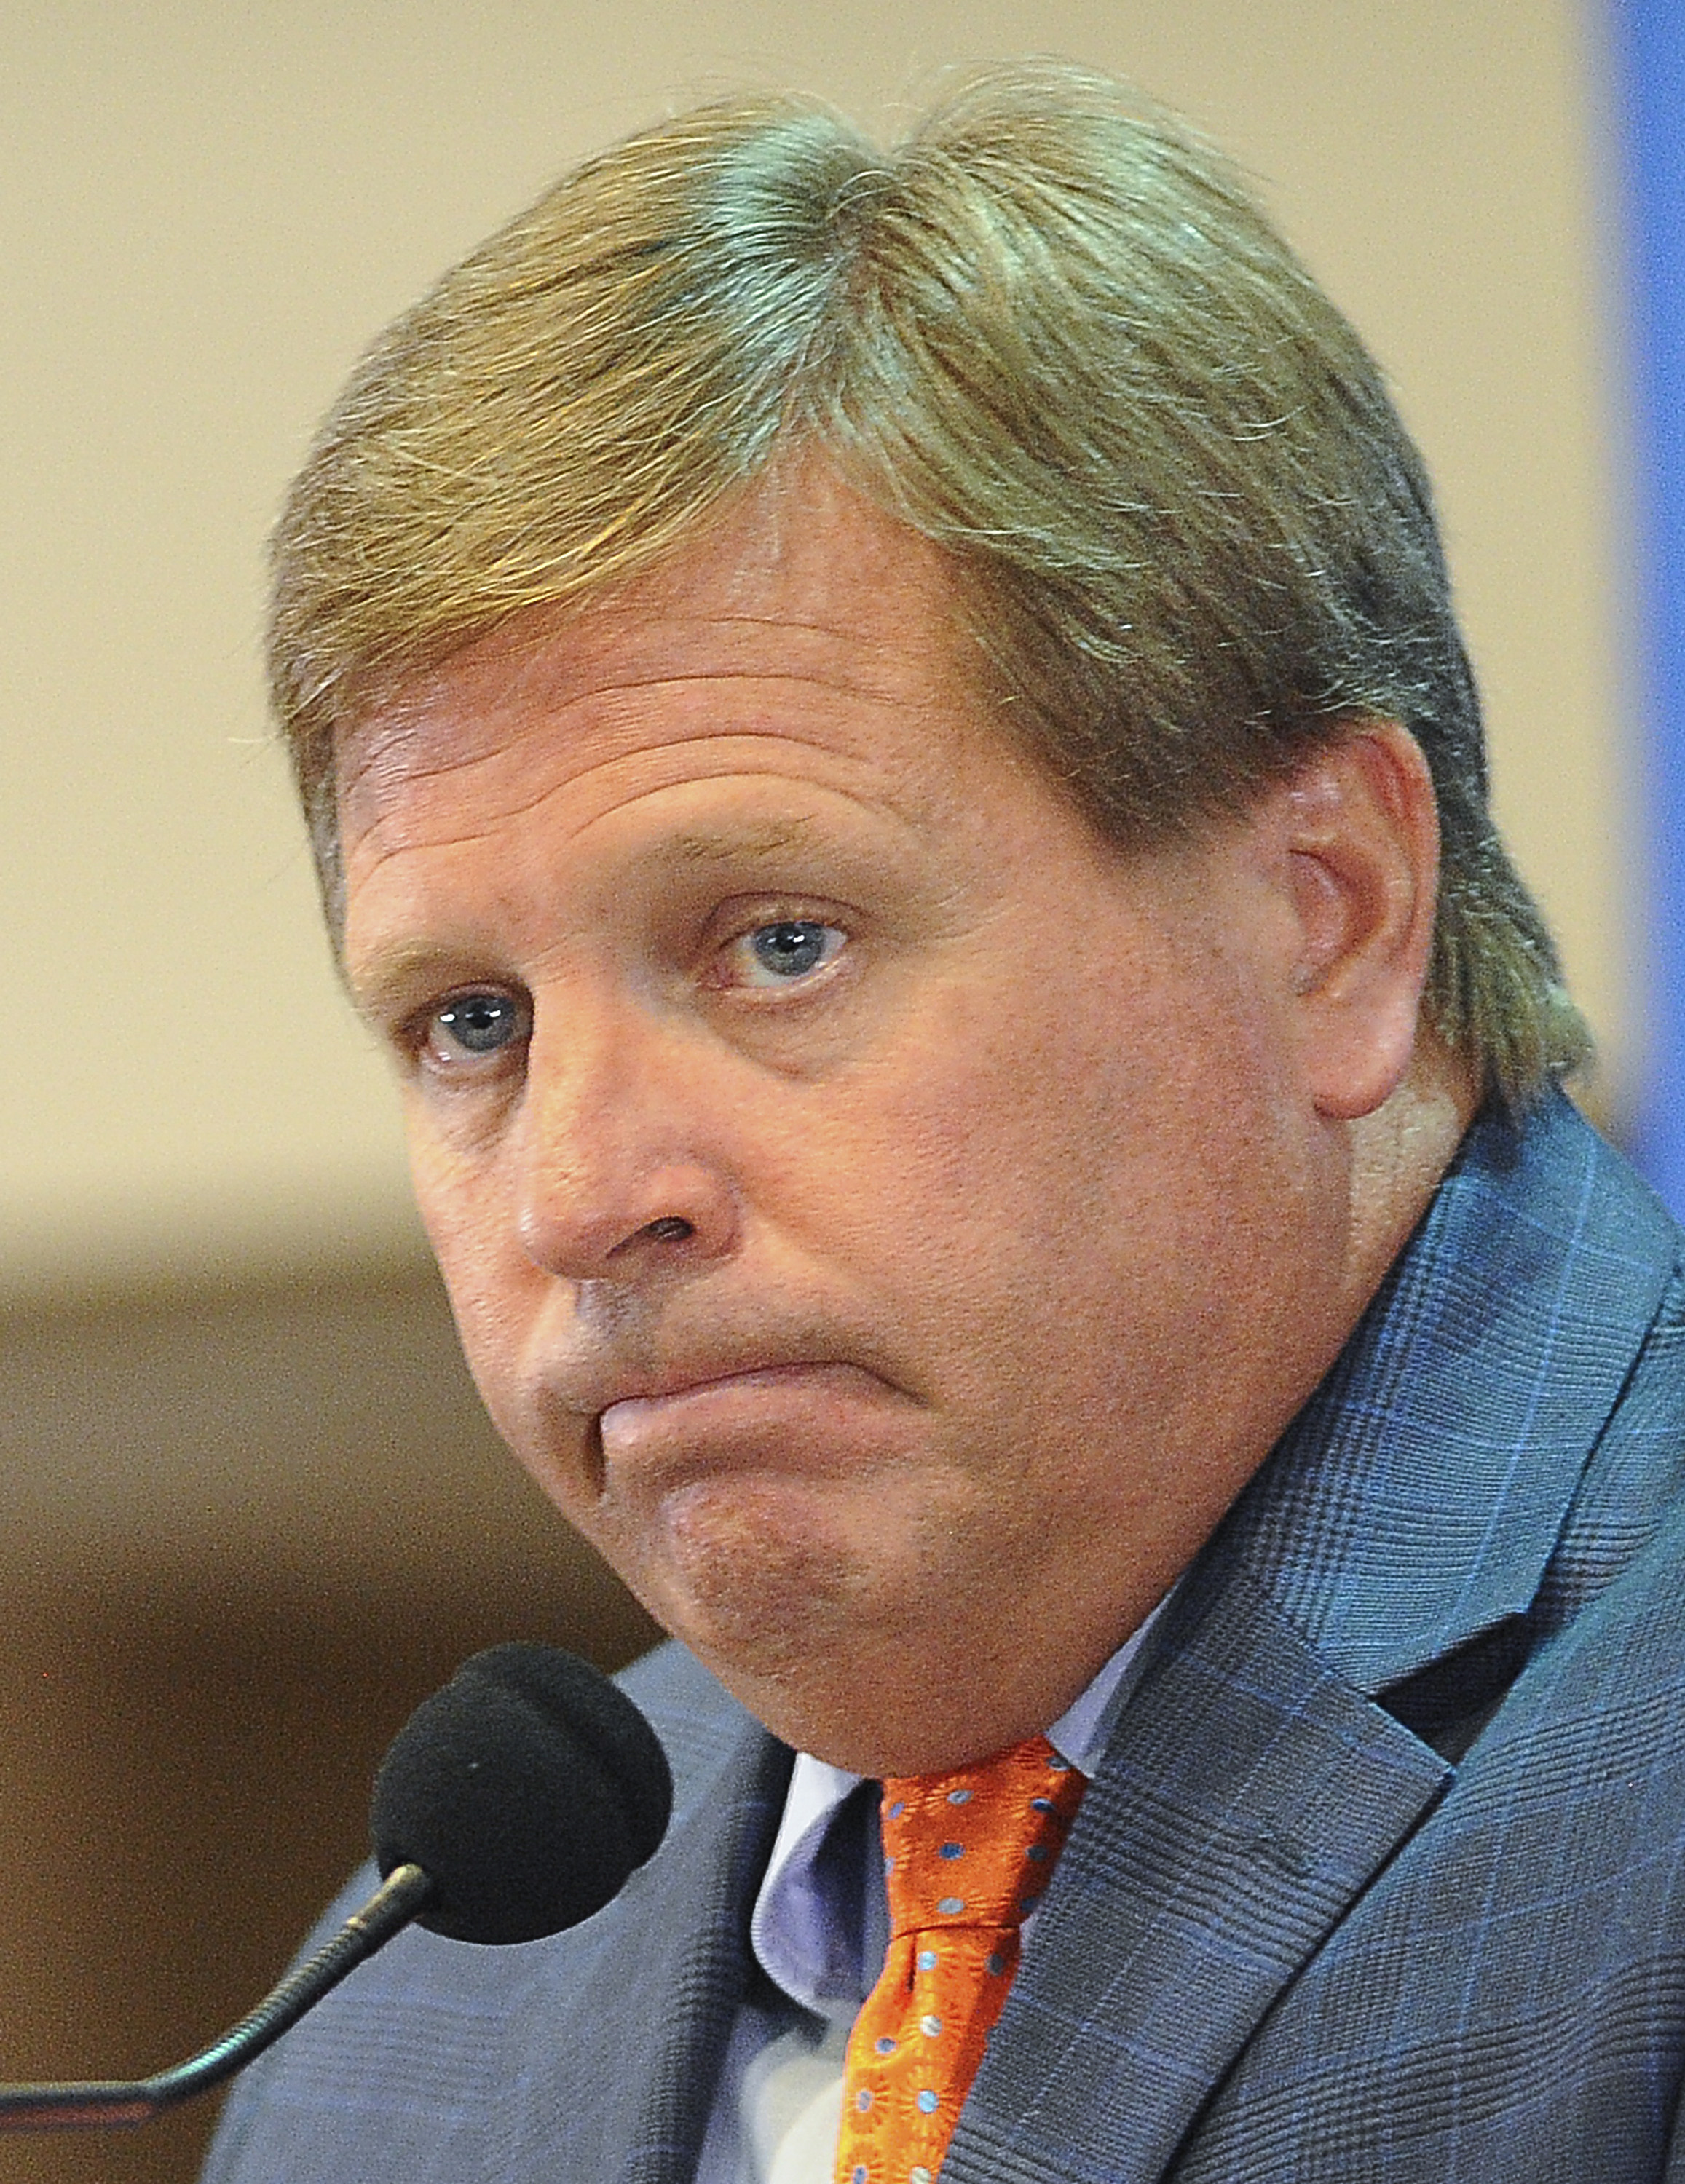 FILE - In this Aug. 5, 2015, file photo, Florida coach Jim McElwain listens to a question from the media during the university's NCAA college football media day in Gainesville, Fla. McElwain won't tolerate silly penalties, especially those for unsportsman